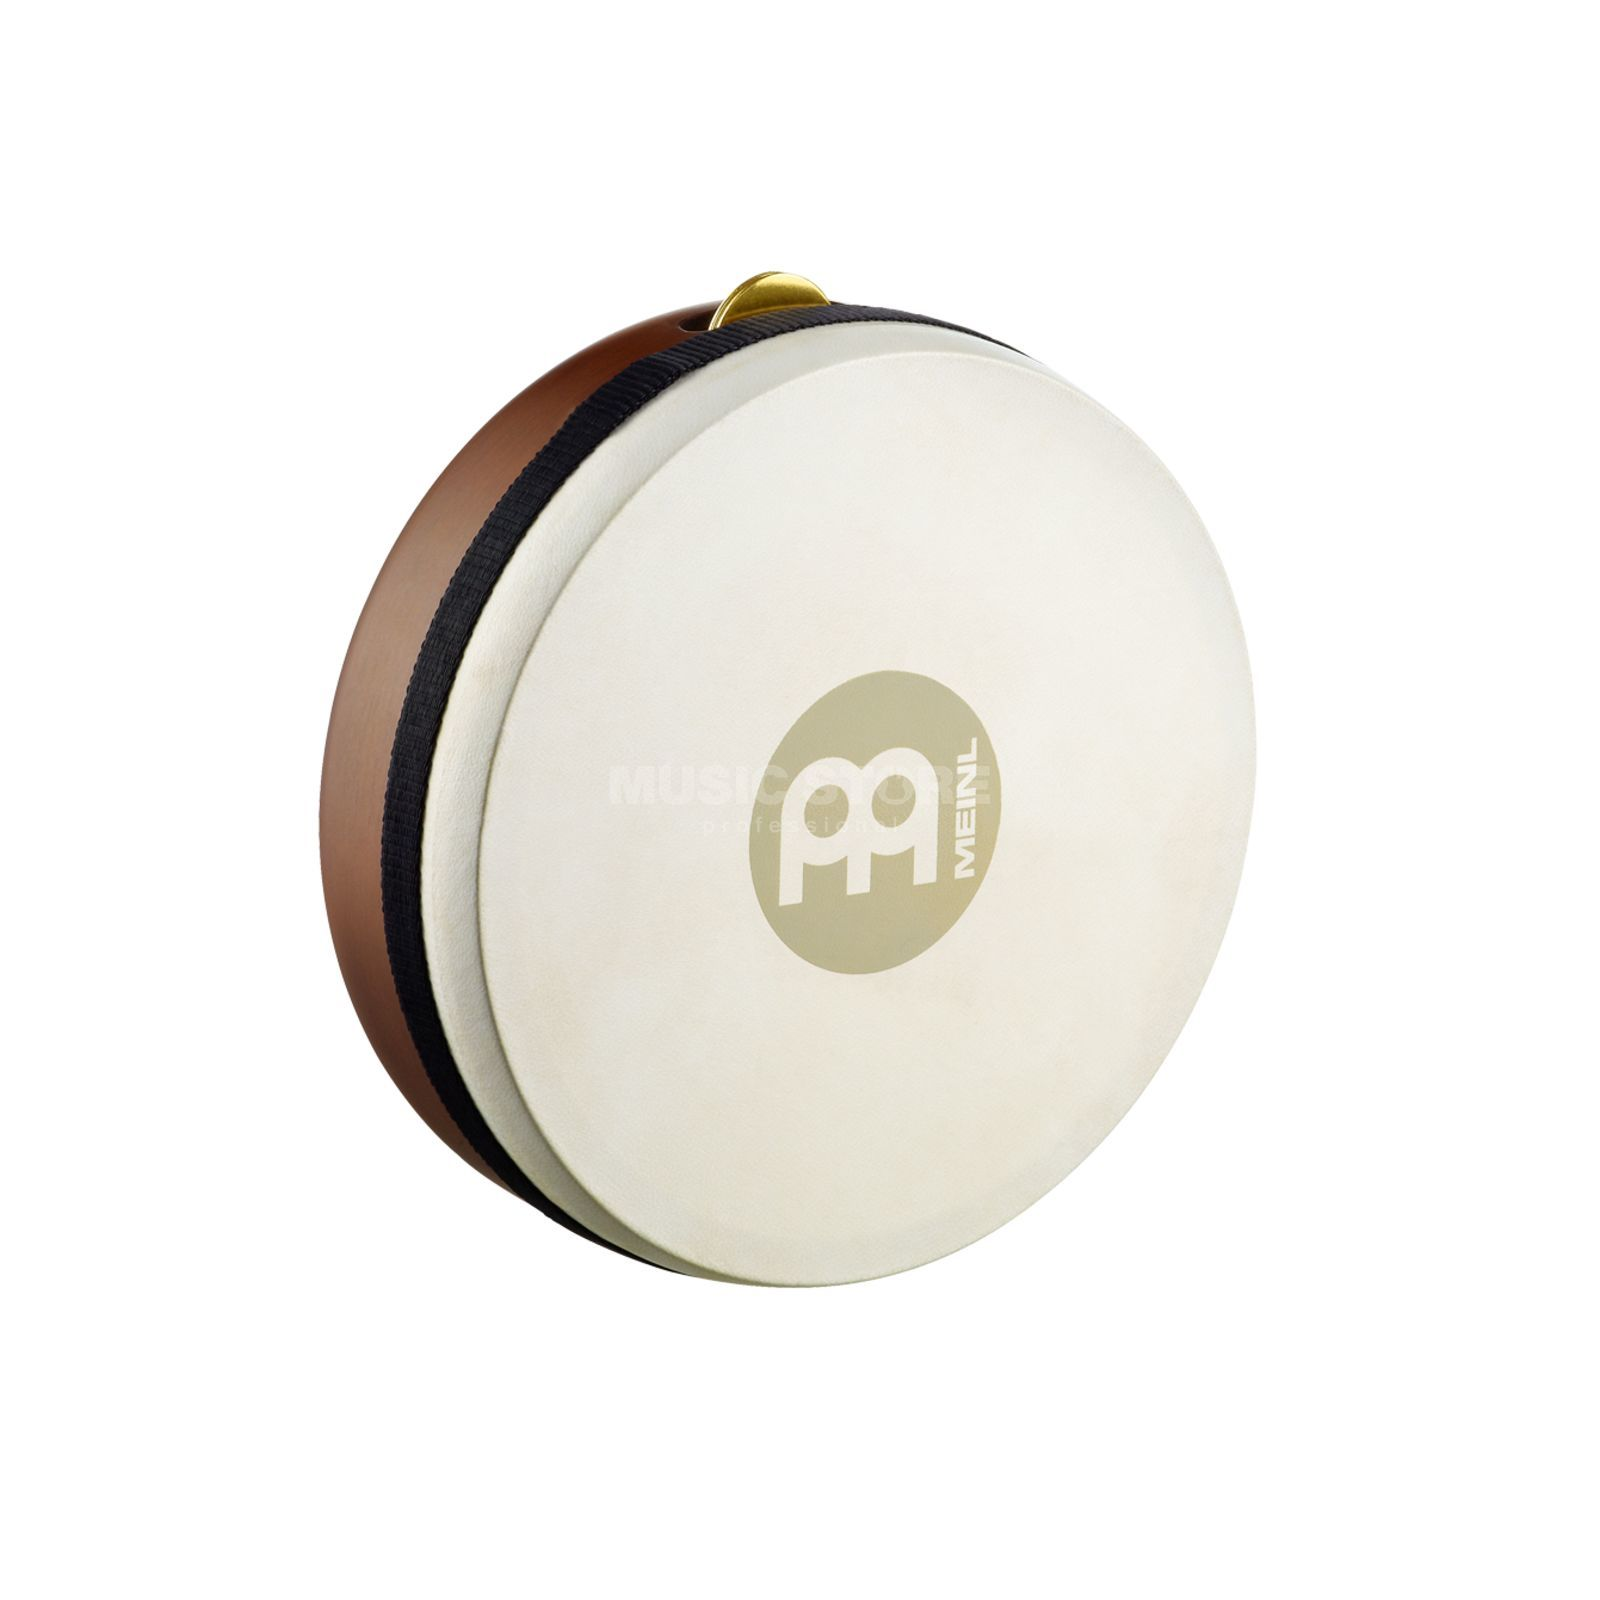 "Meinl Frame Drum Kanjira FD7KA, 7 1/2""x2 1/4"", African Brown Product Image"